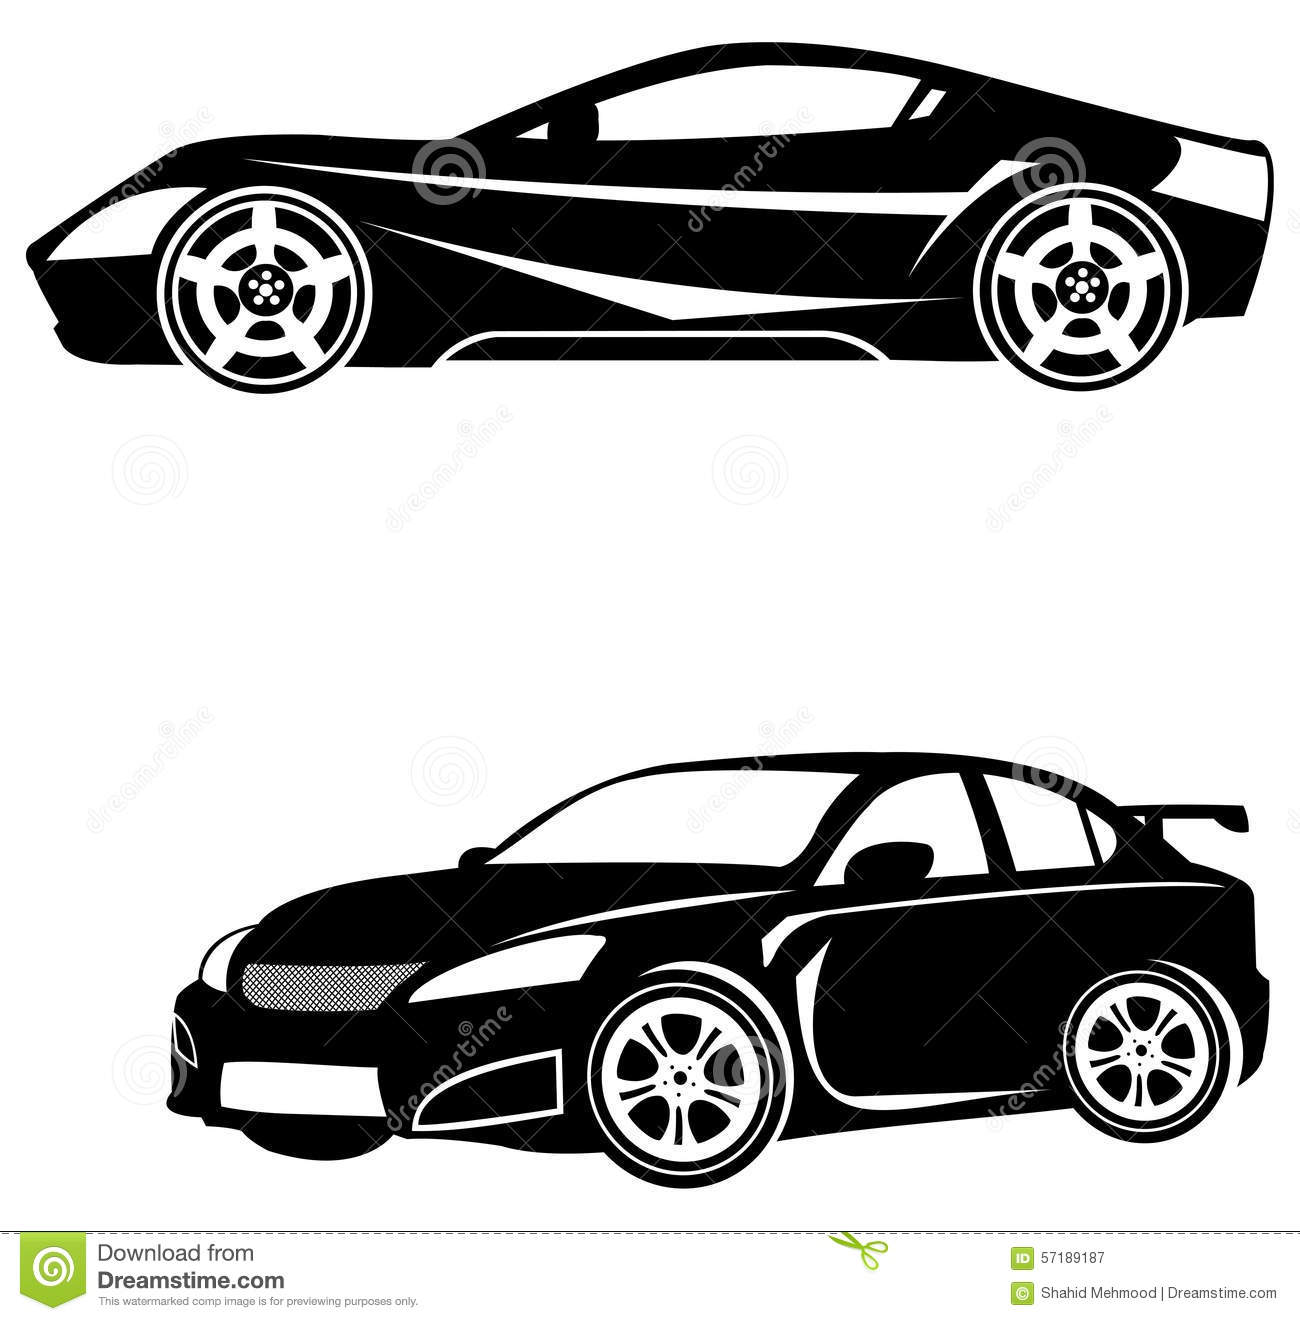 cars-logo-template-bla...